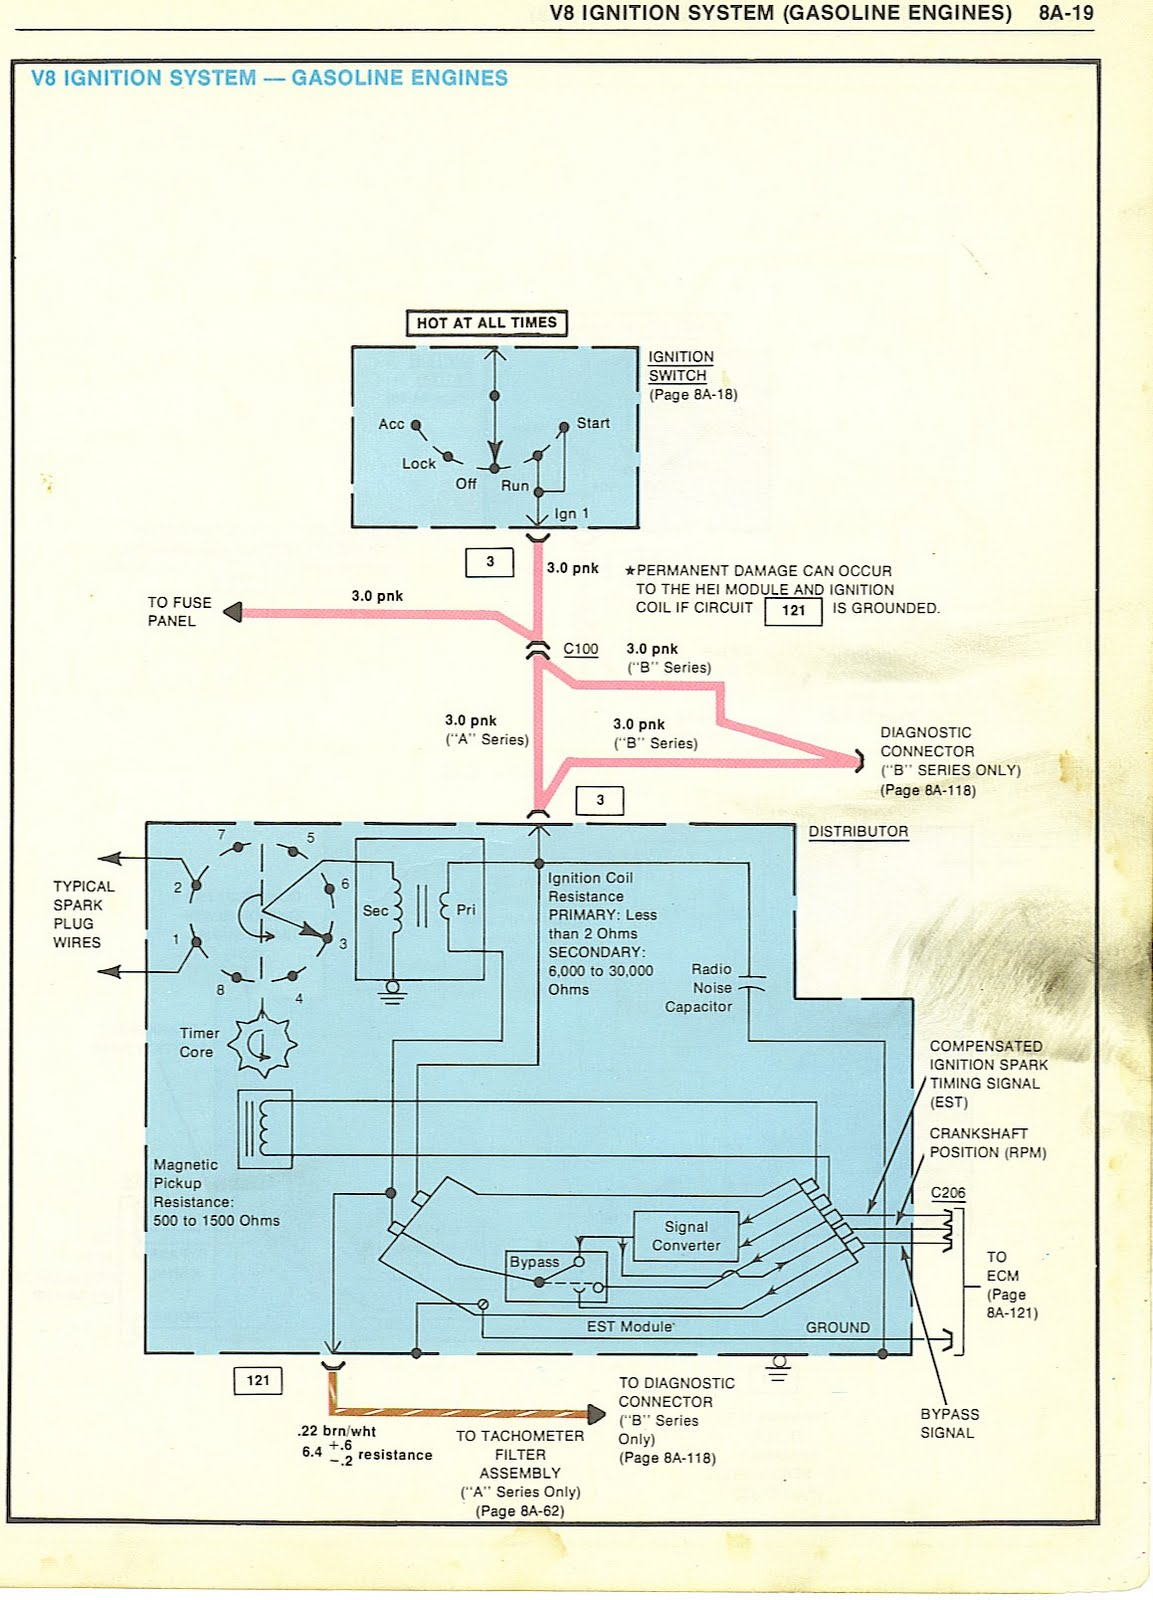 v8 ignition system malibu wiring diagram chevrolet 1978 chevrolet el camino wiring diagram wiring diagram  at alyssarenee.co